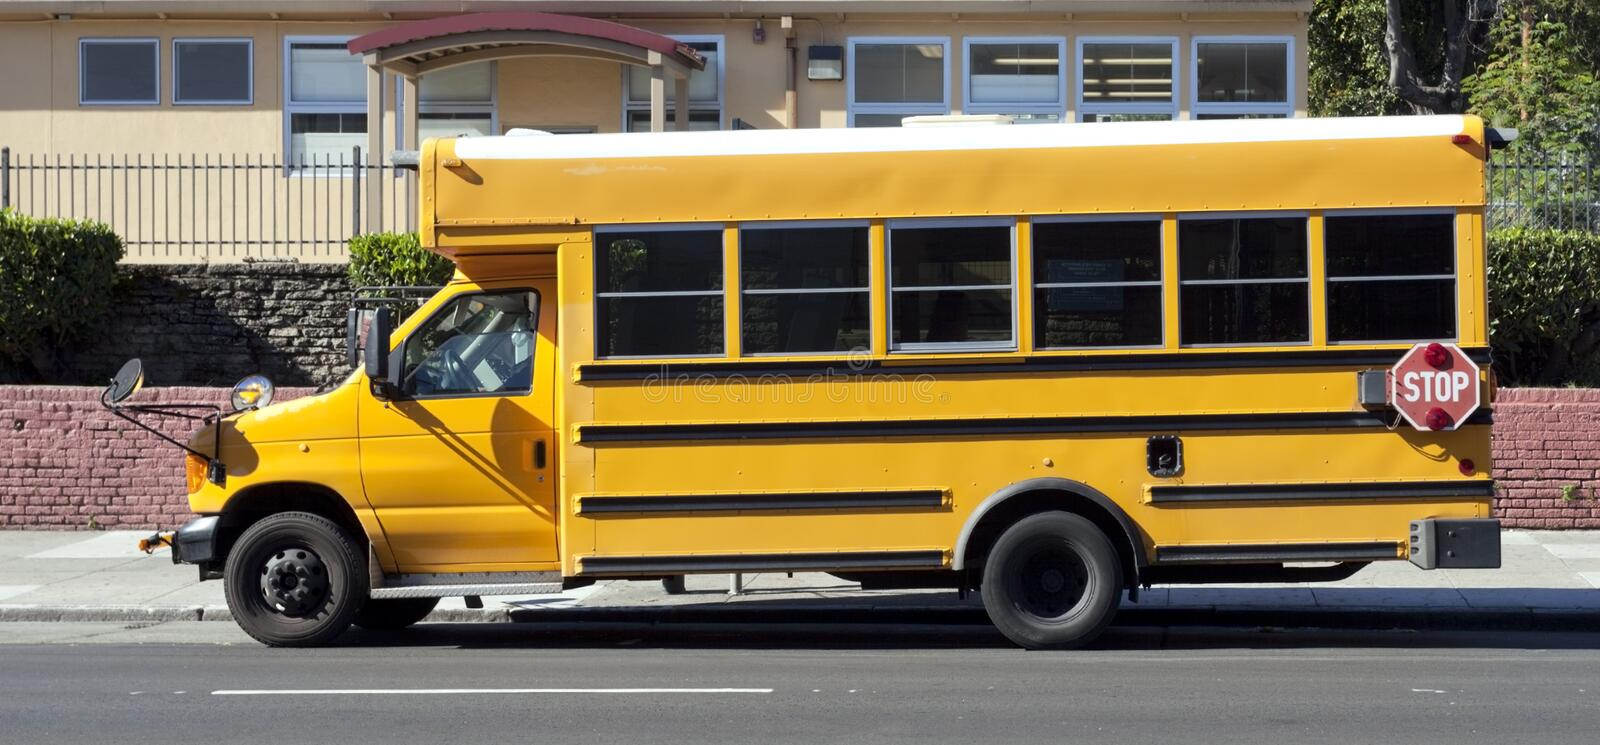 Parked School Bus stock images